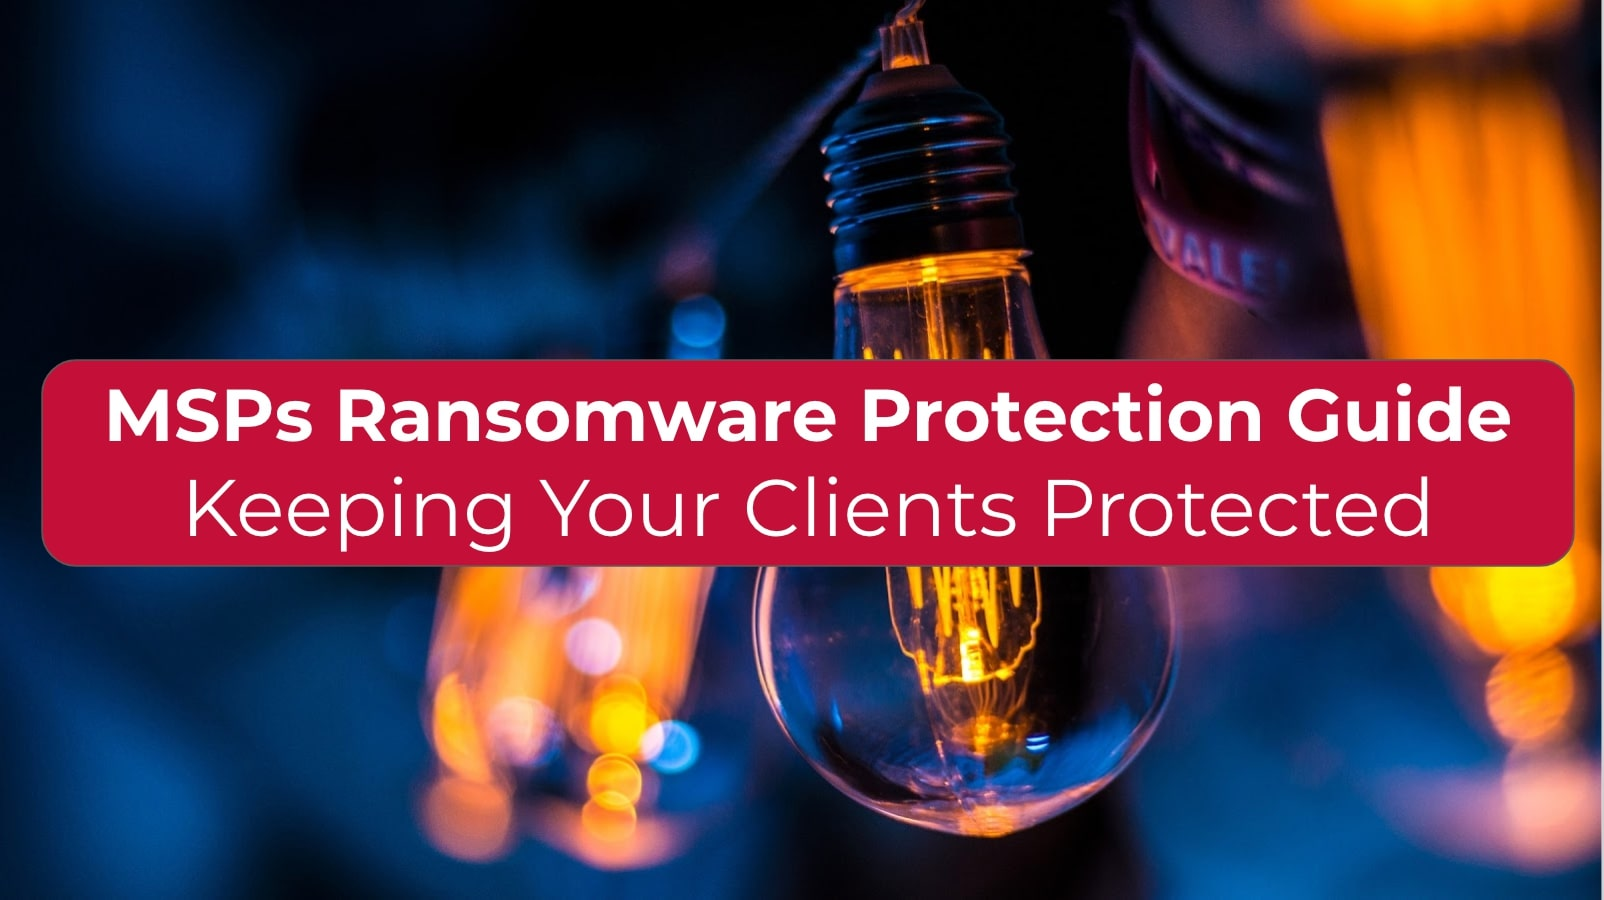 MSPs Ransomware Protection Guide Keeping Your Clients Protected